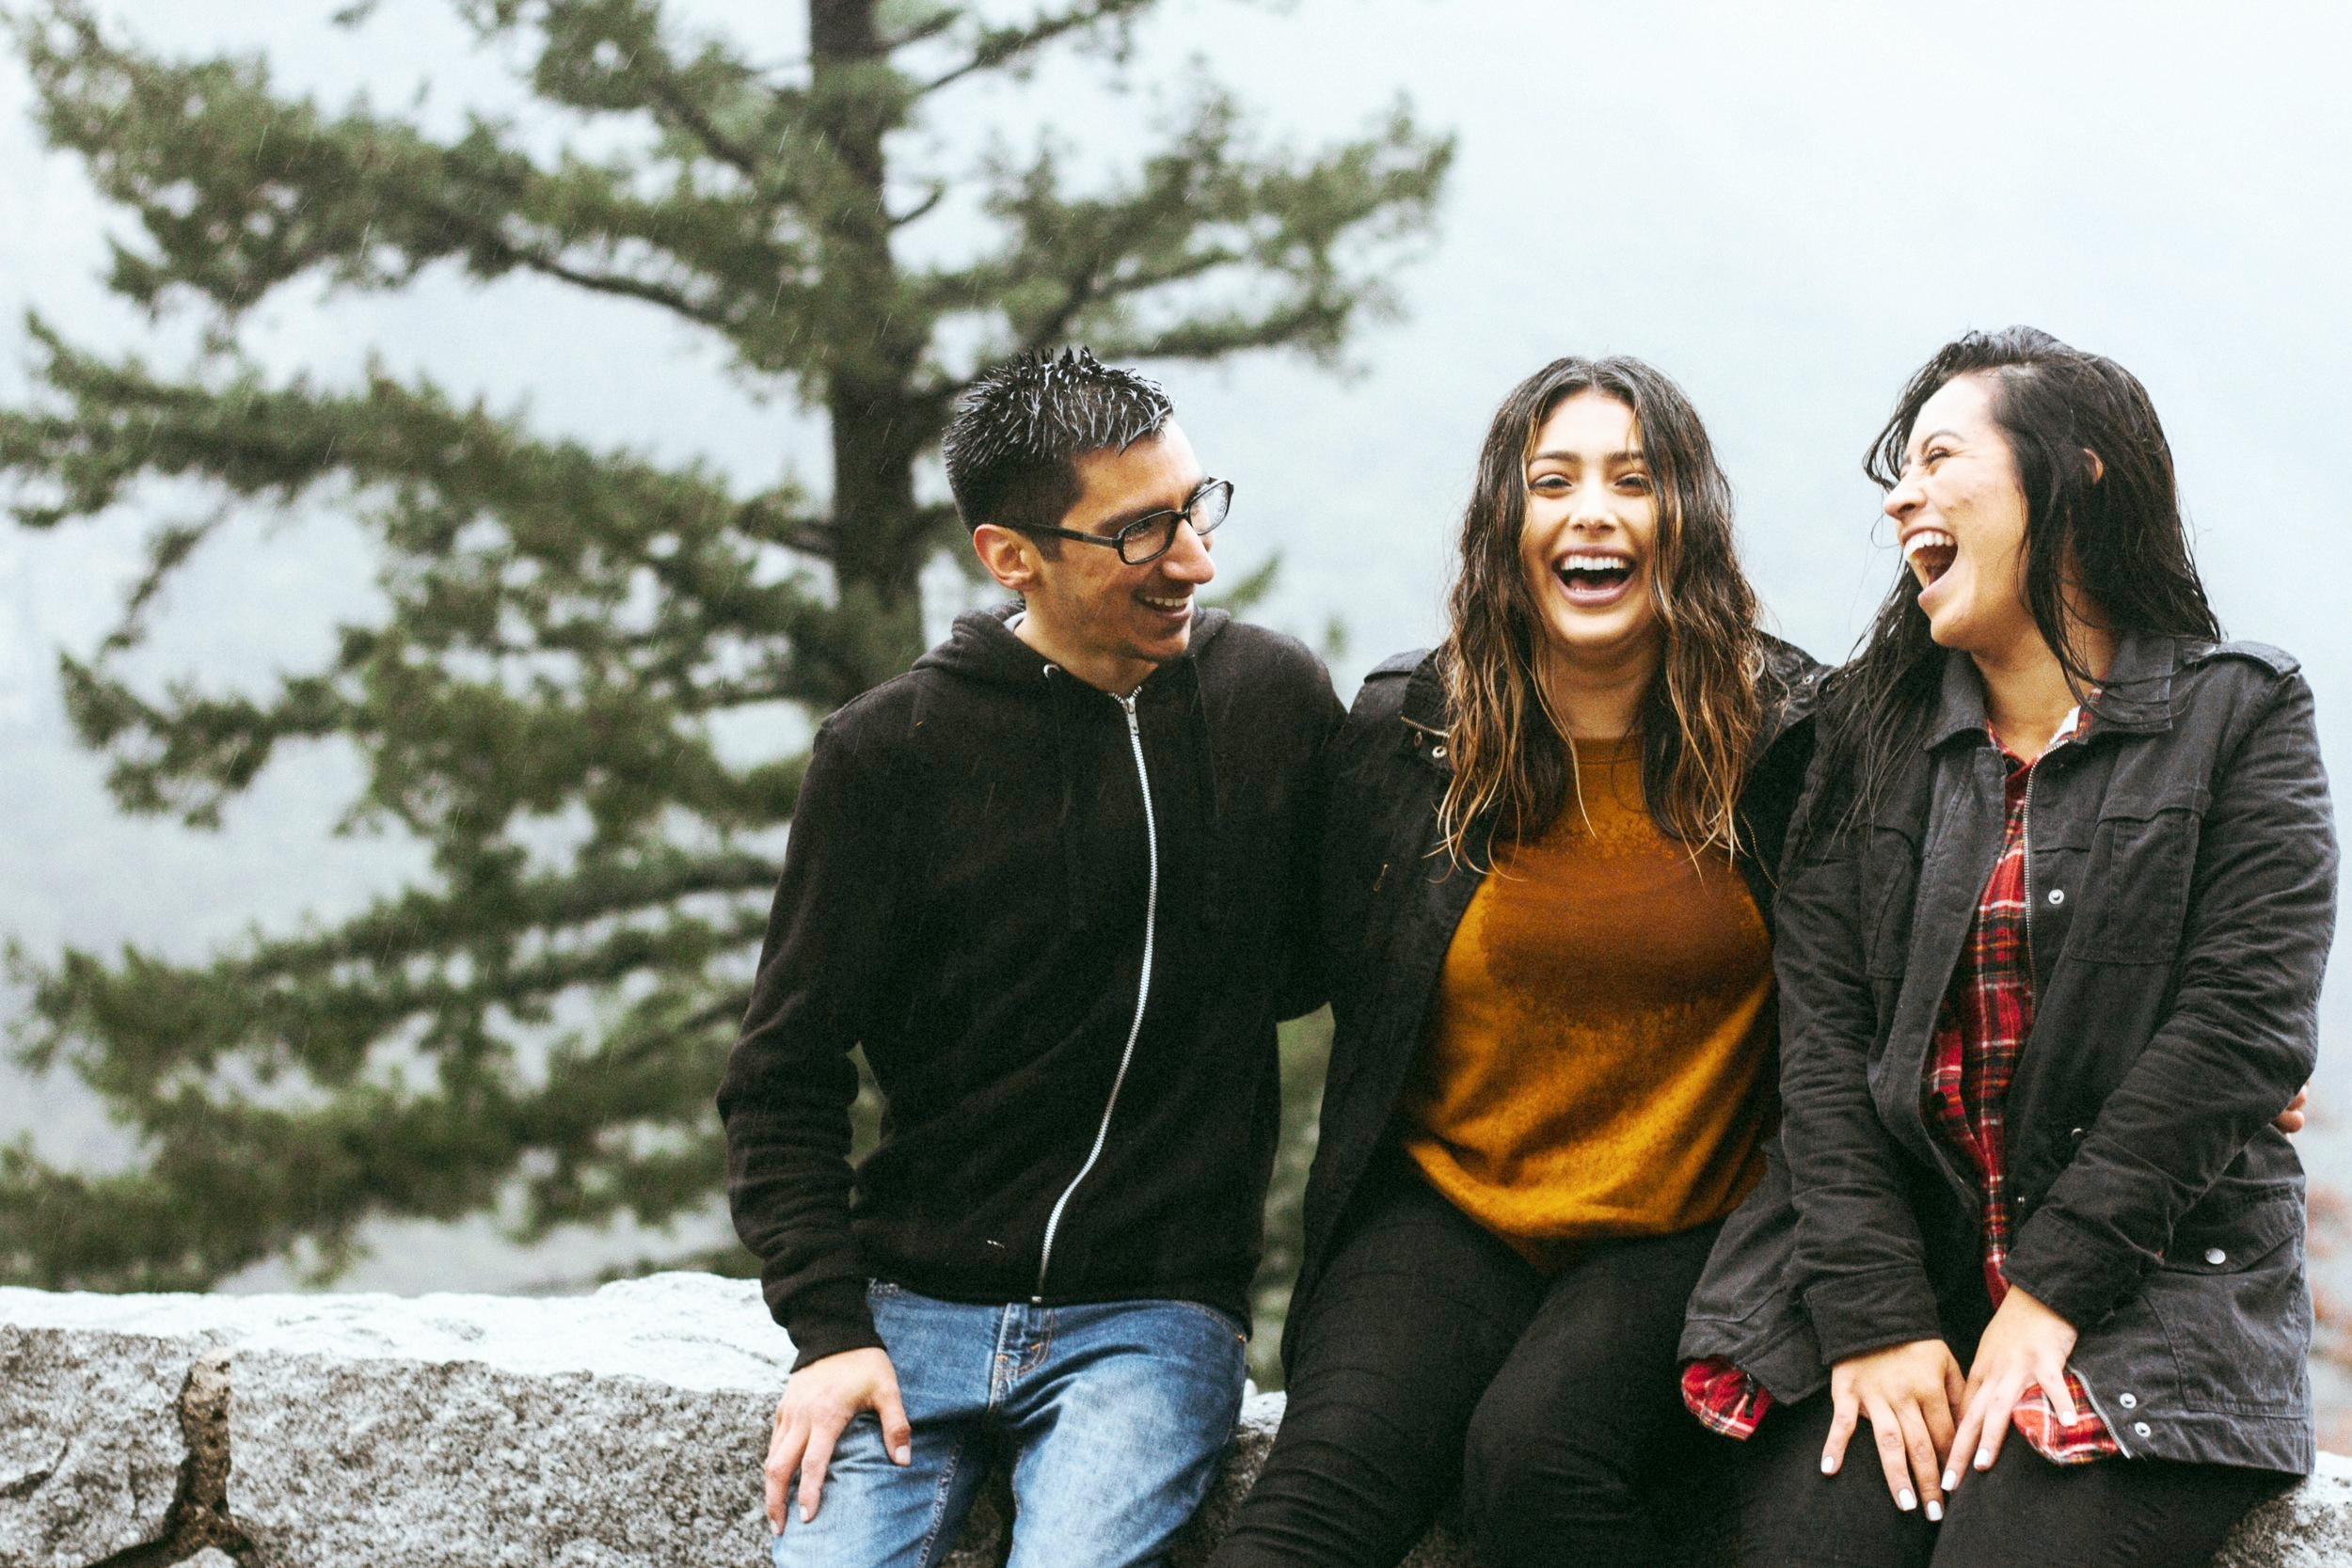 people laughing together.jpg